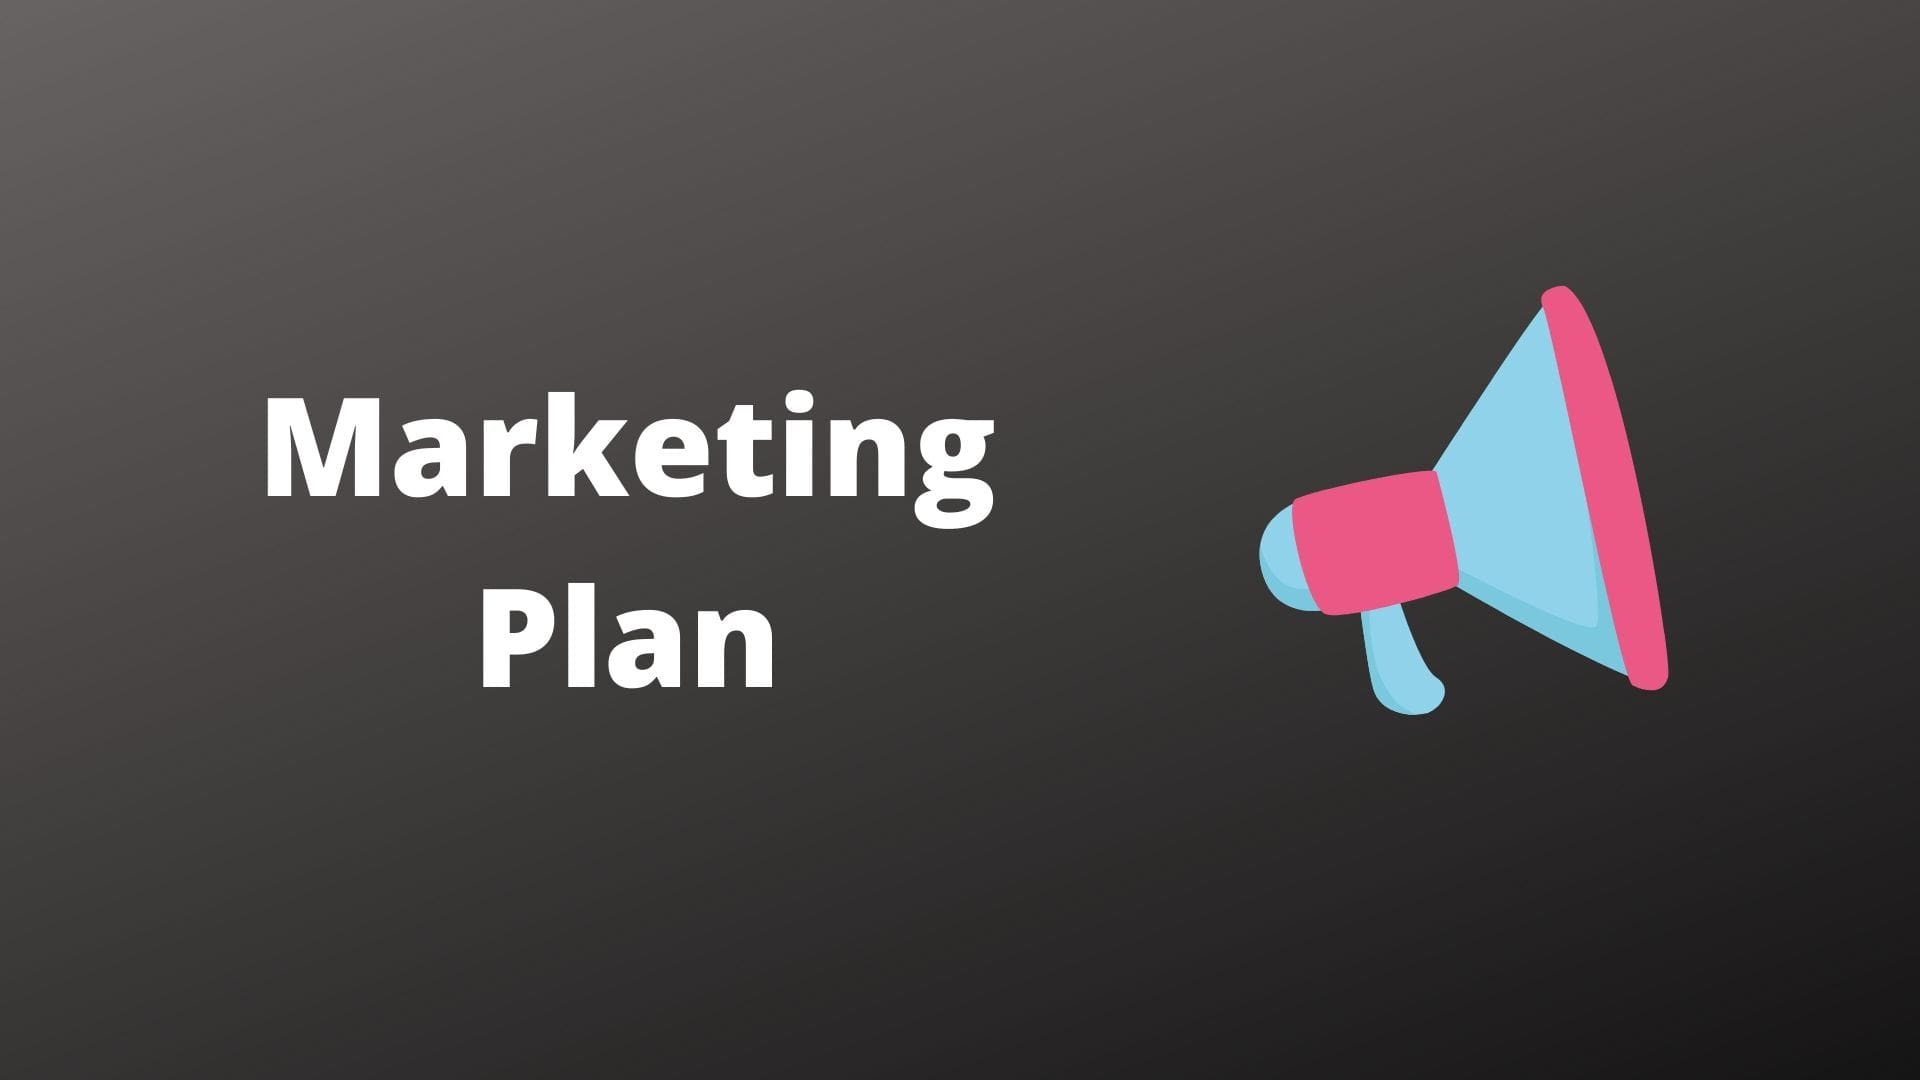 Marketing Plan In Tax Preparation Business